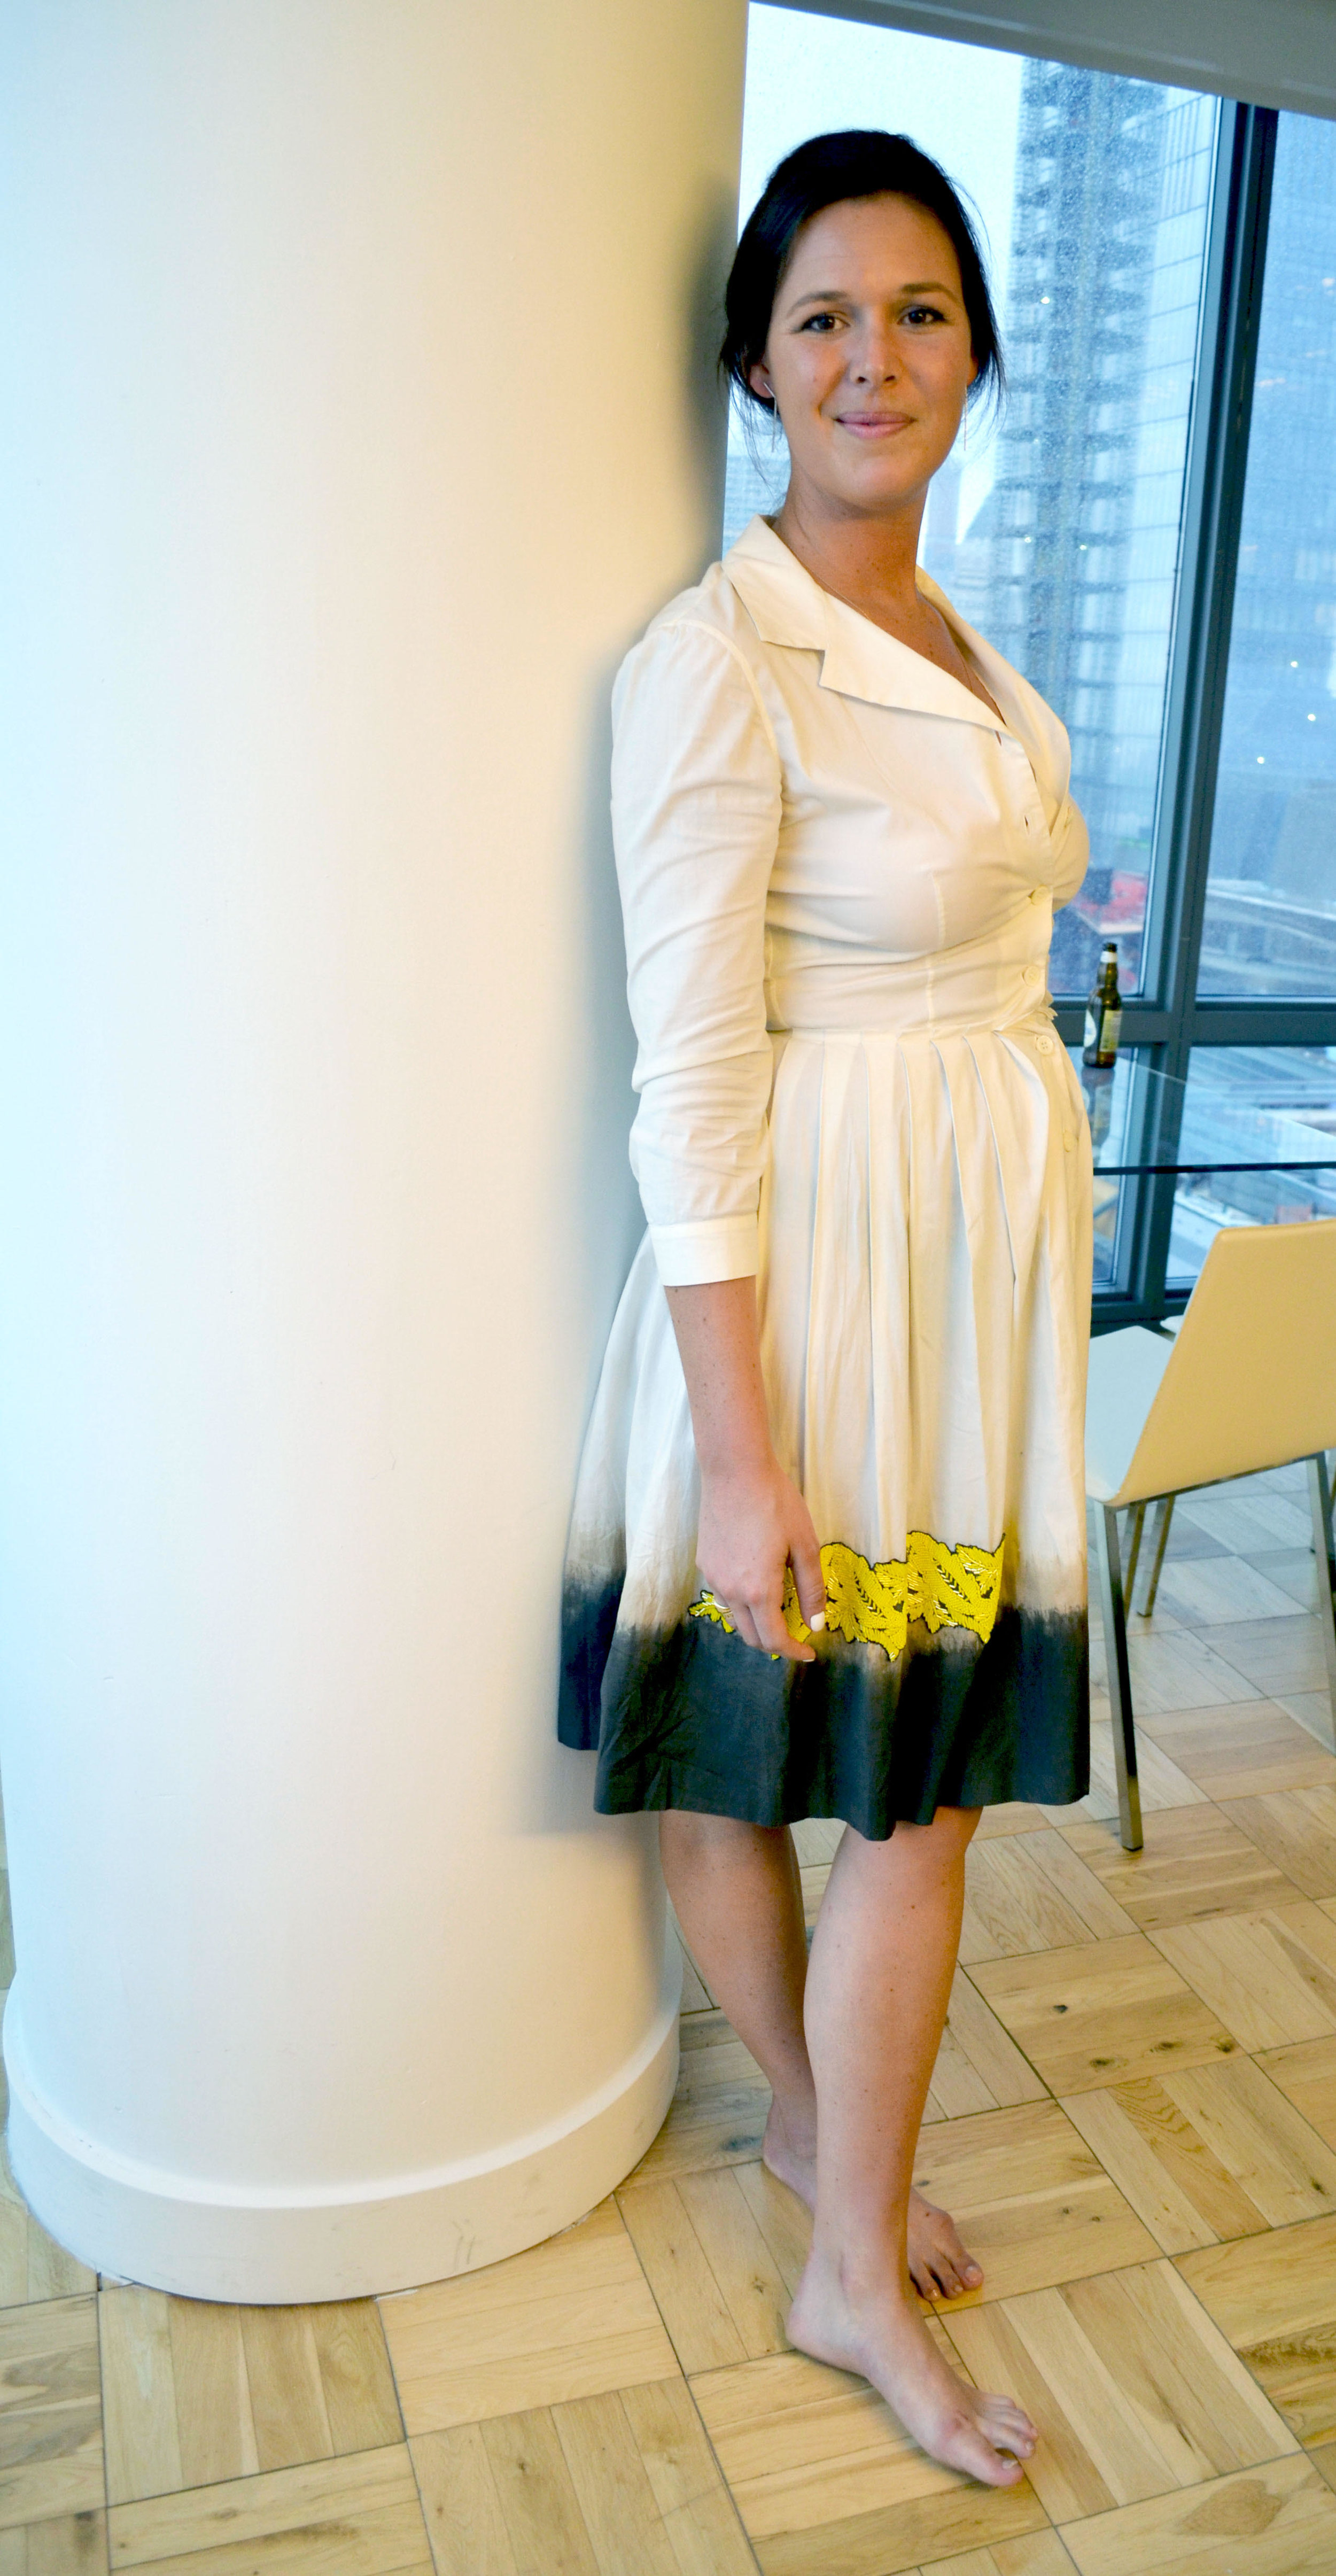 Sophia in our Prada Embellished Dress. Email us at info@shopverco.com for inquiries.